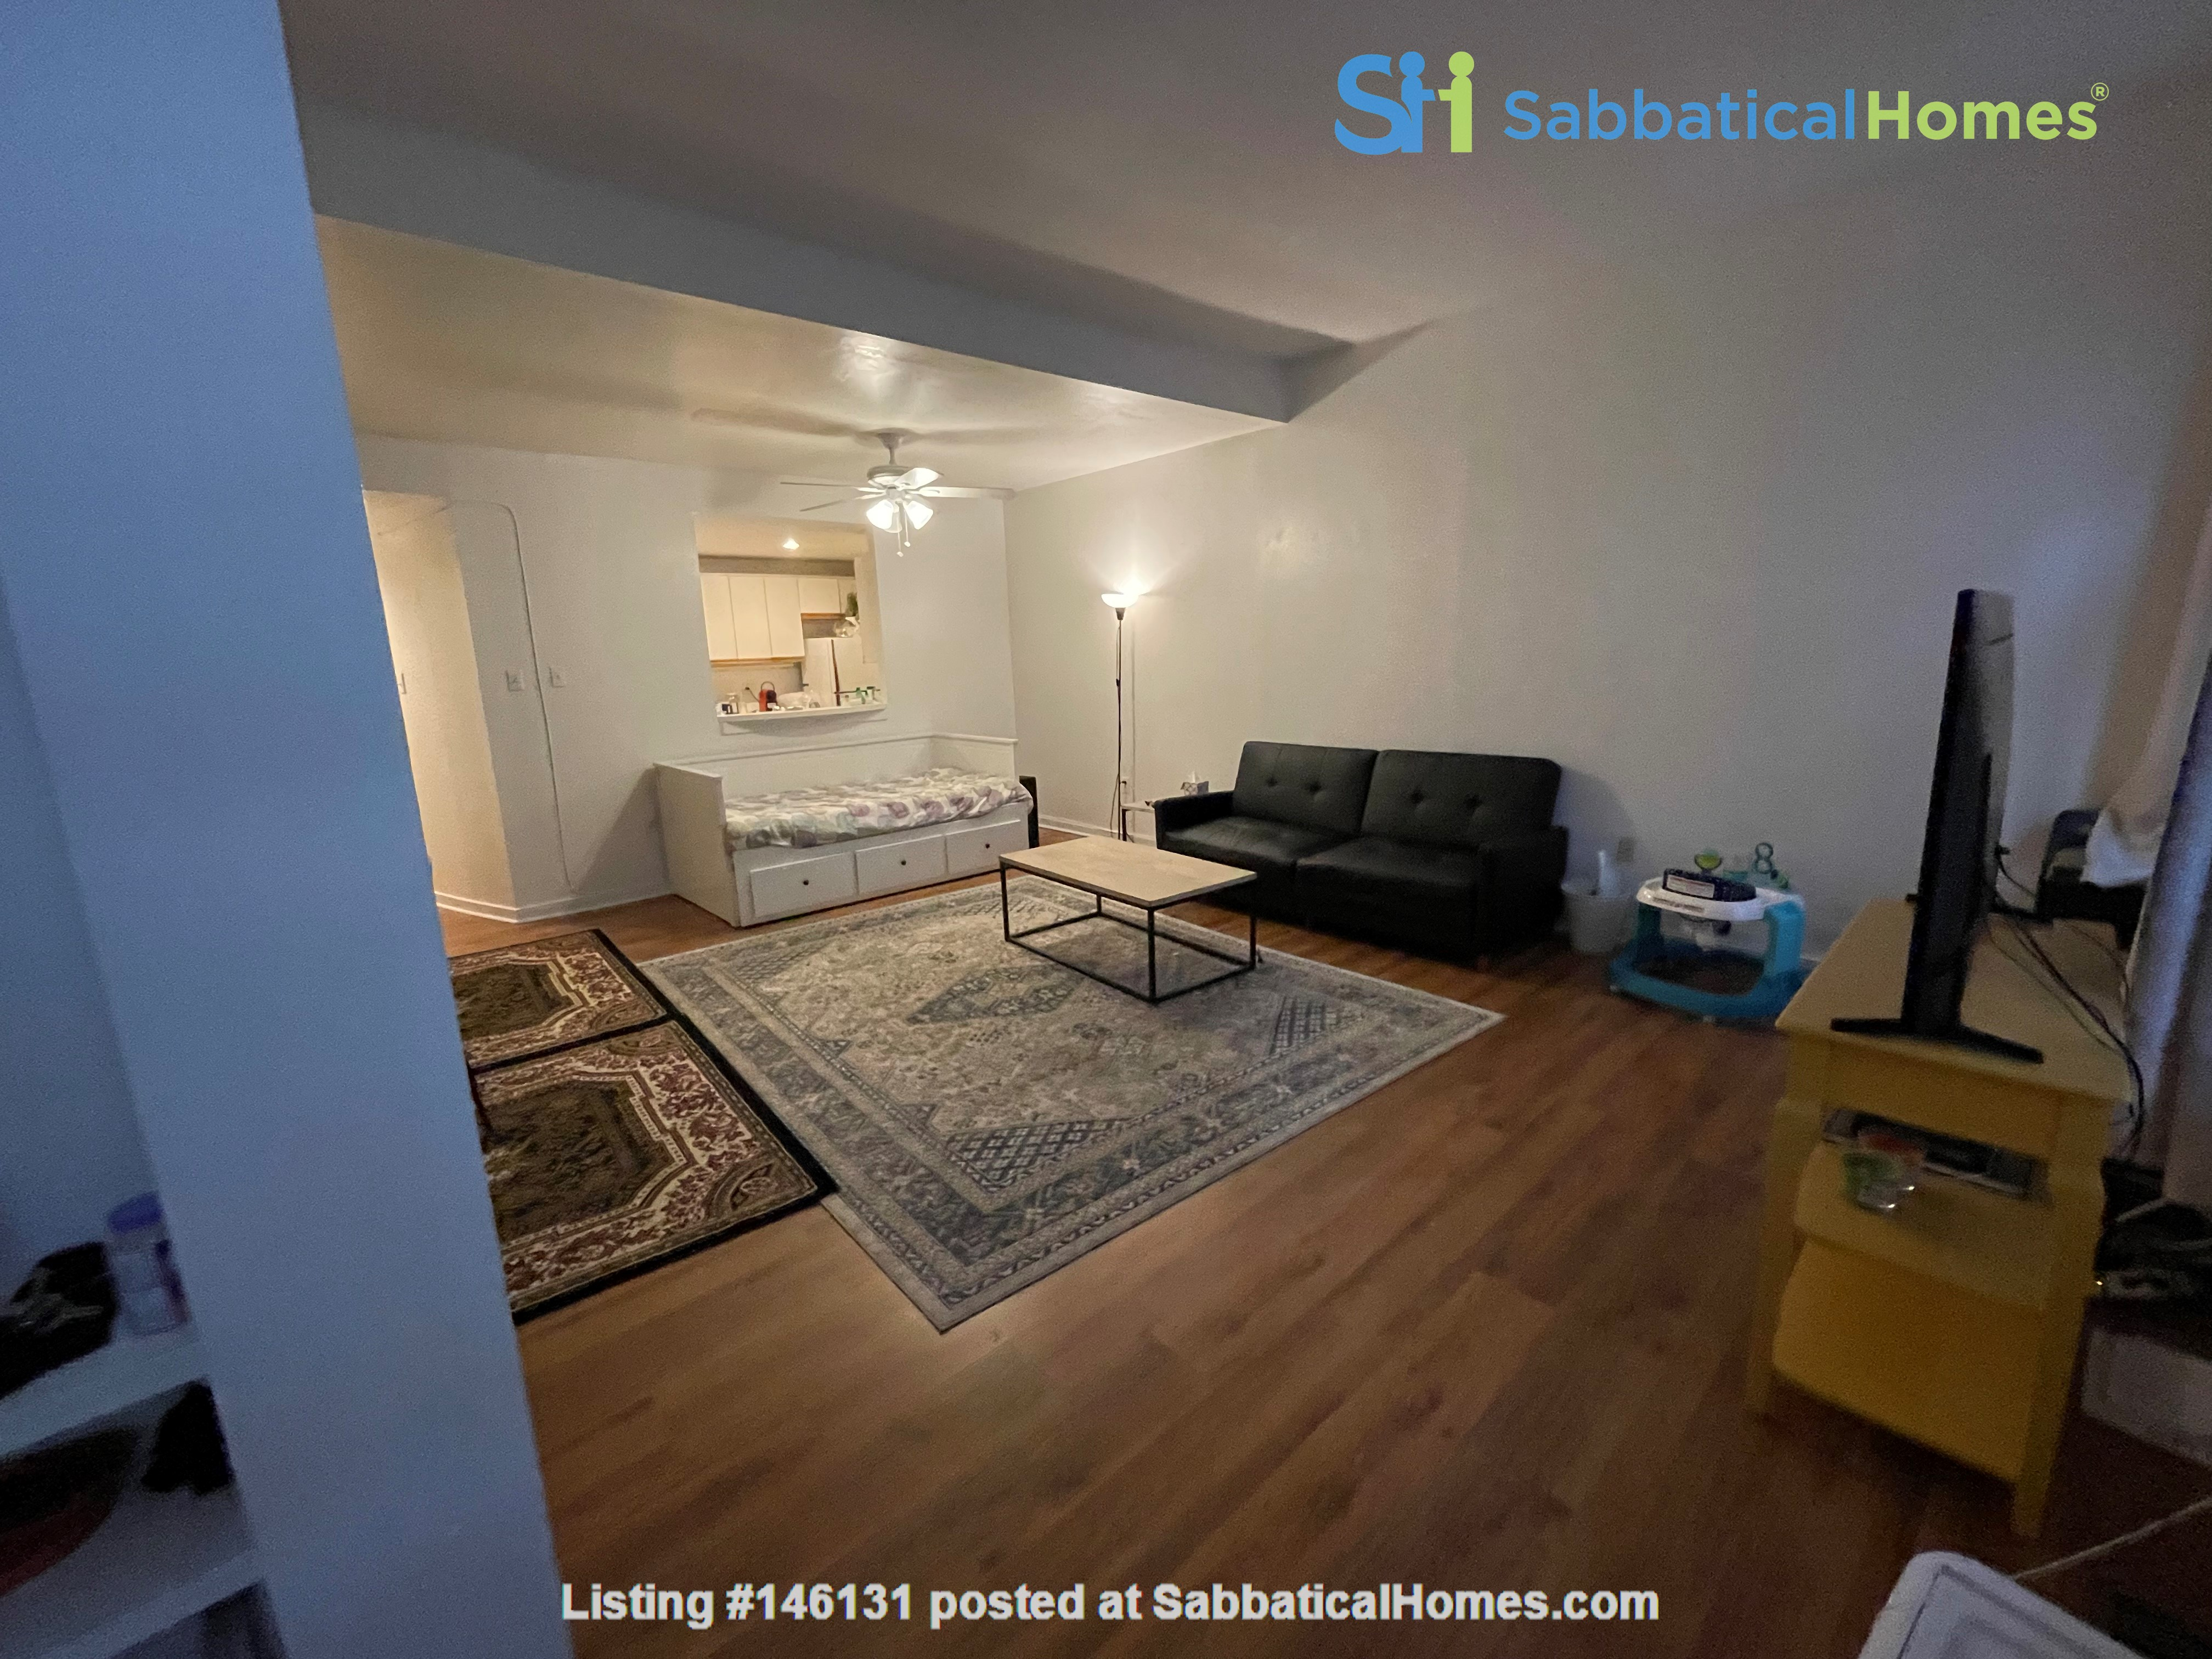 Spacious Old City 1 bedroom available Aug 1 -a city oasis! Home Rental in Philadelphia 1